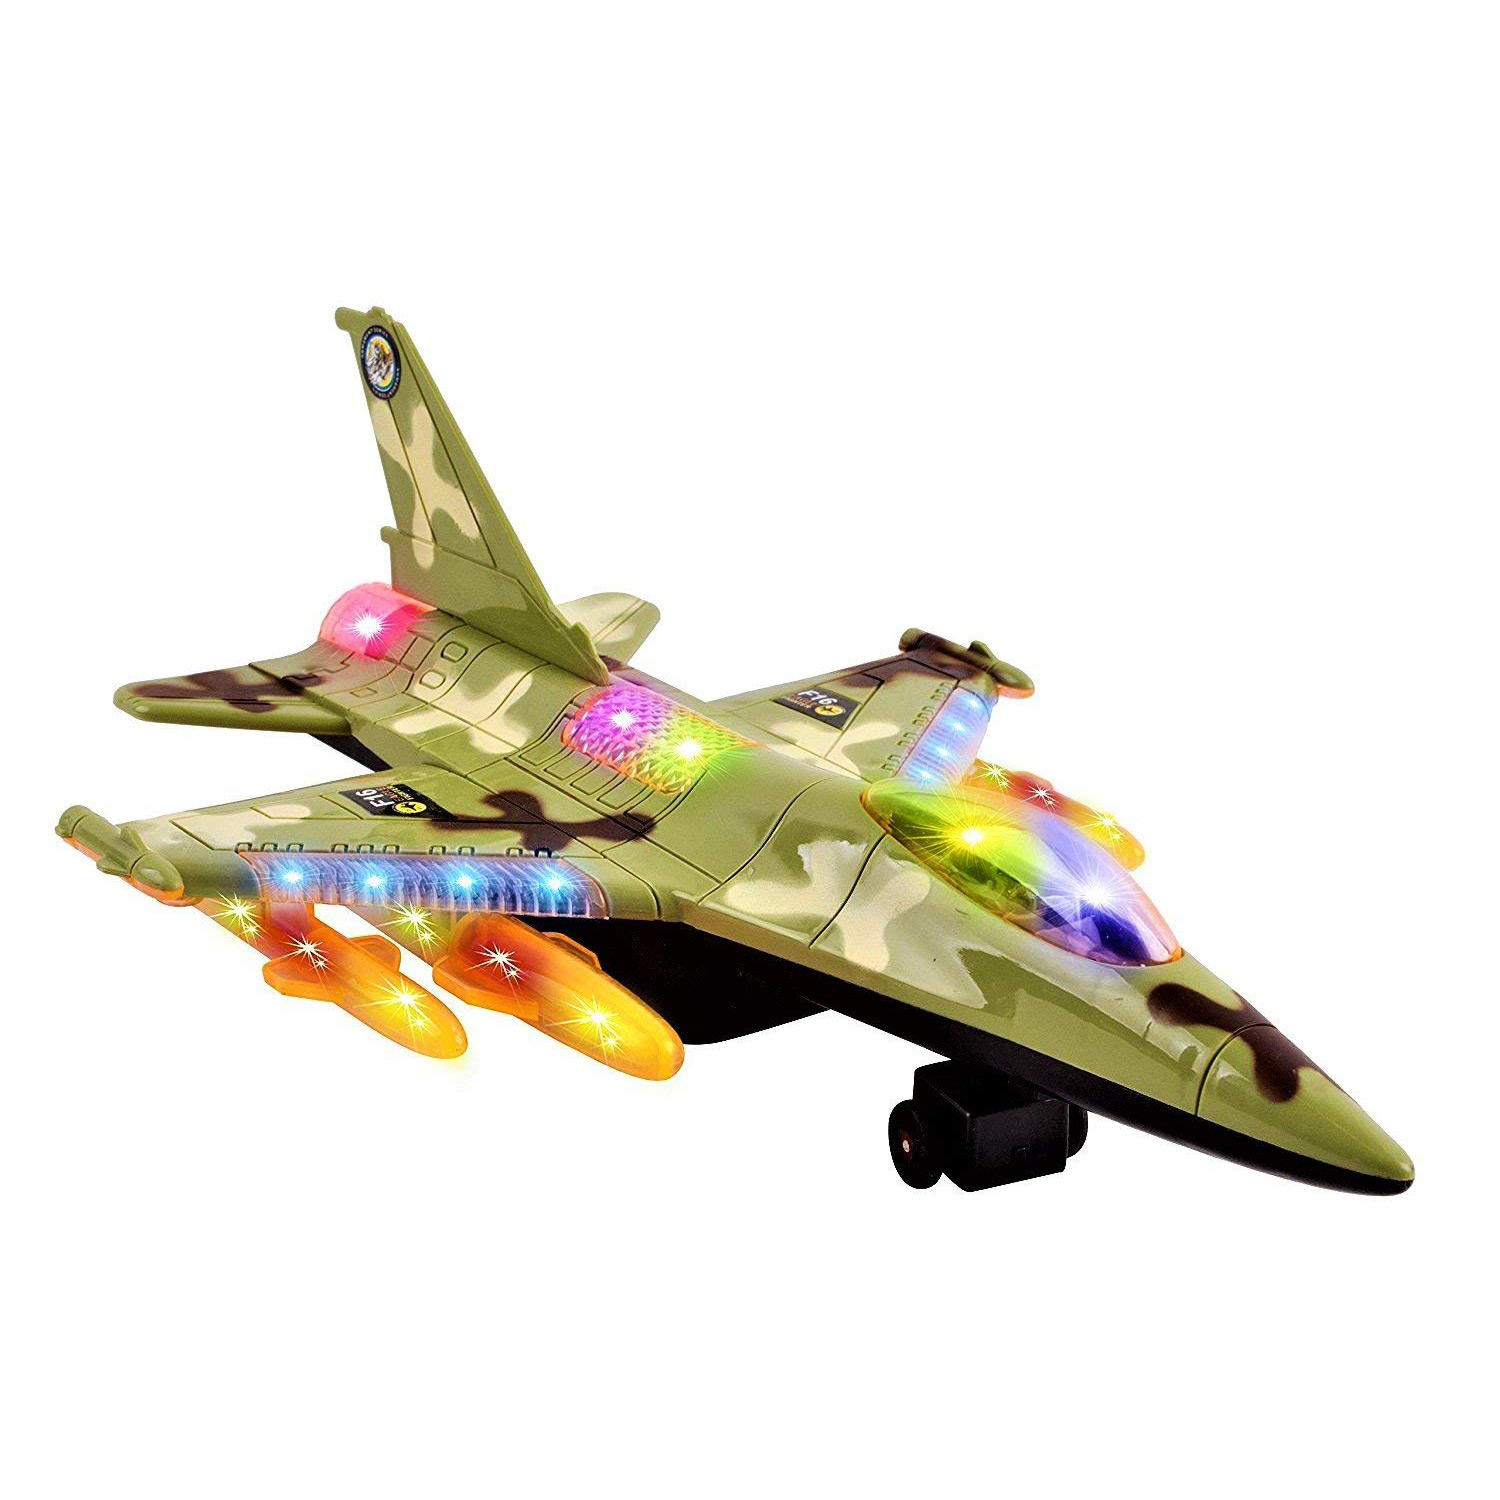 Toy Army Air Force Fighter Jet F16 Battery Operated Kid's Bump and Go Toy Plane With Flashing Lights And Sounds Bumps Into Something and Will Change Direction Perfect For Boys And Girls (Green)